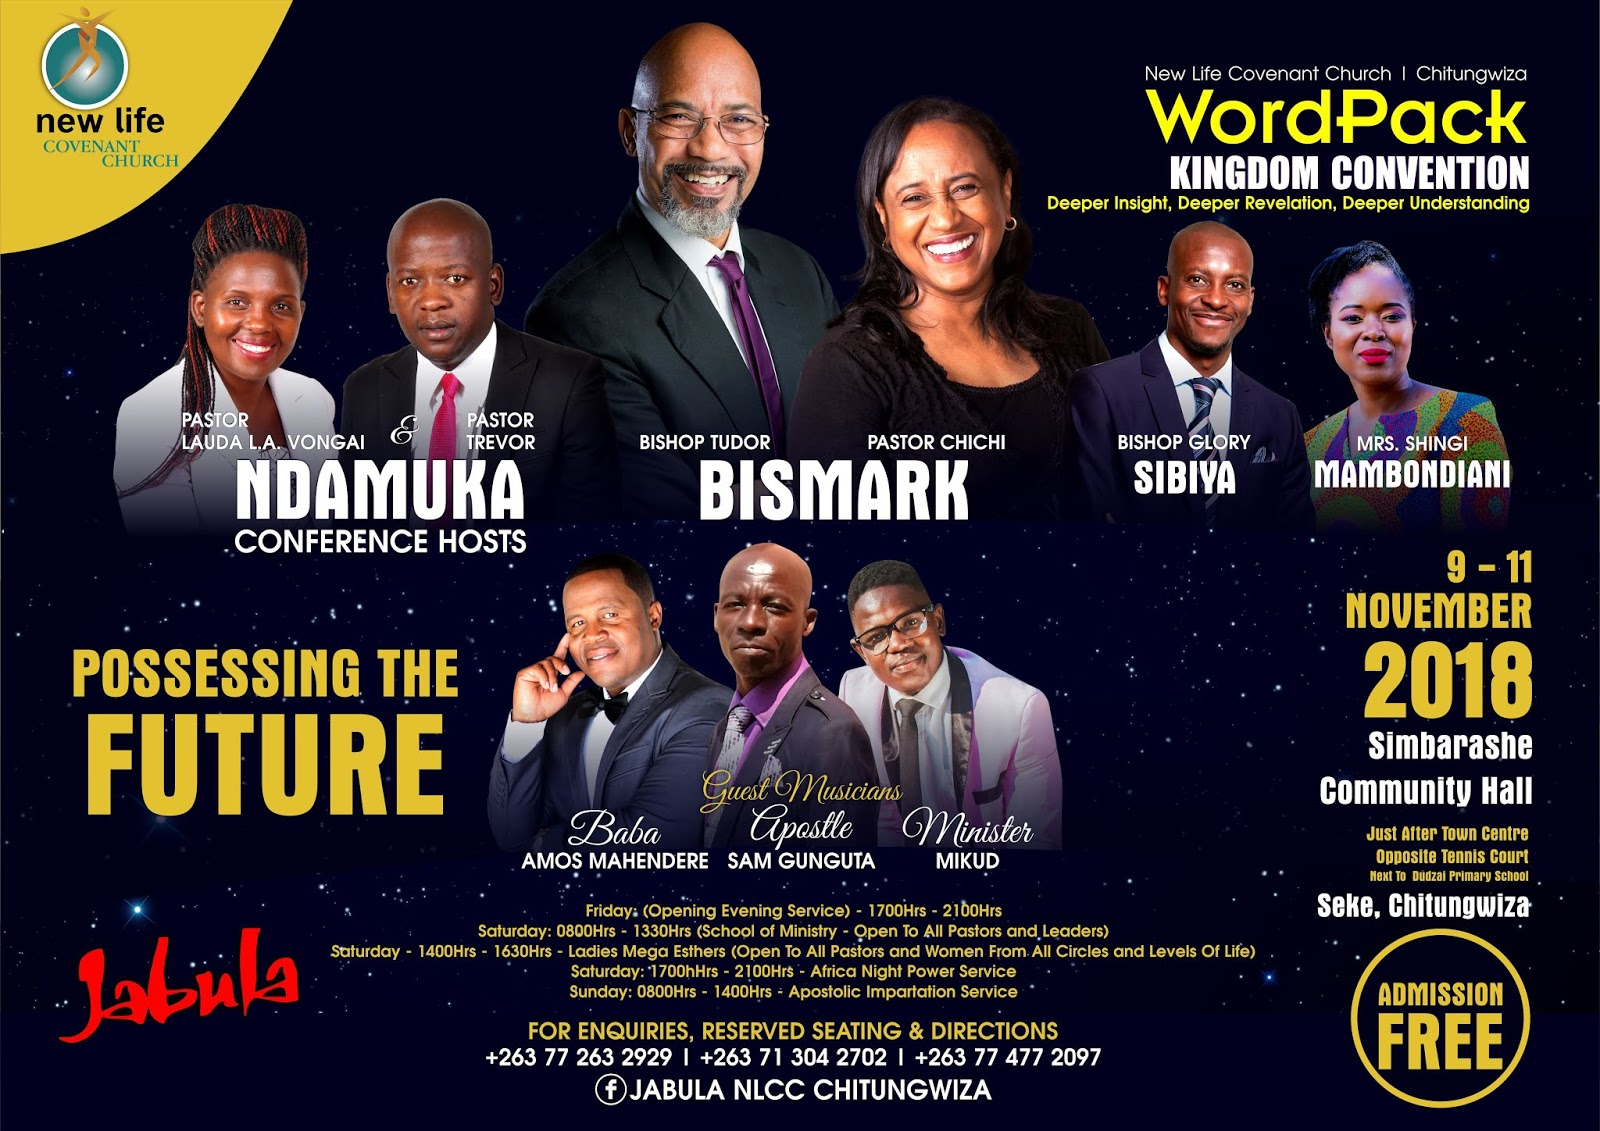 Bishop Tudor Bismark For Chitungwiza WordPack Kingdom Convention 2018